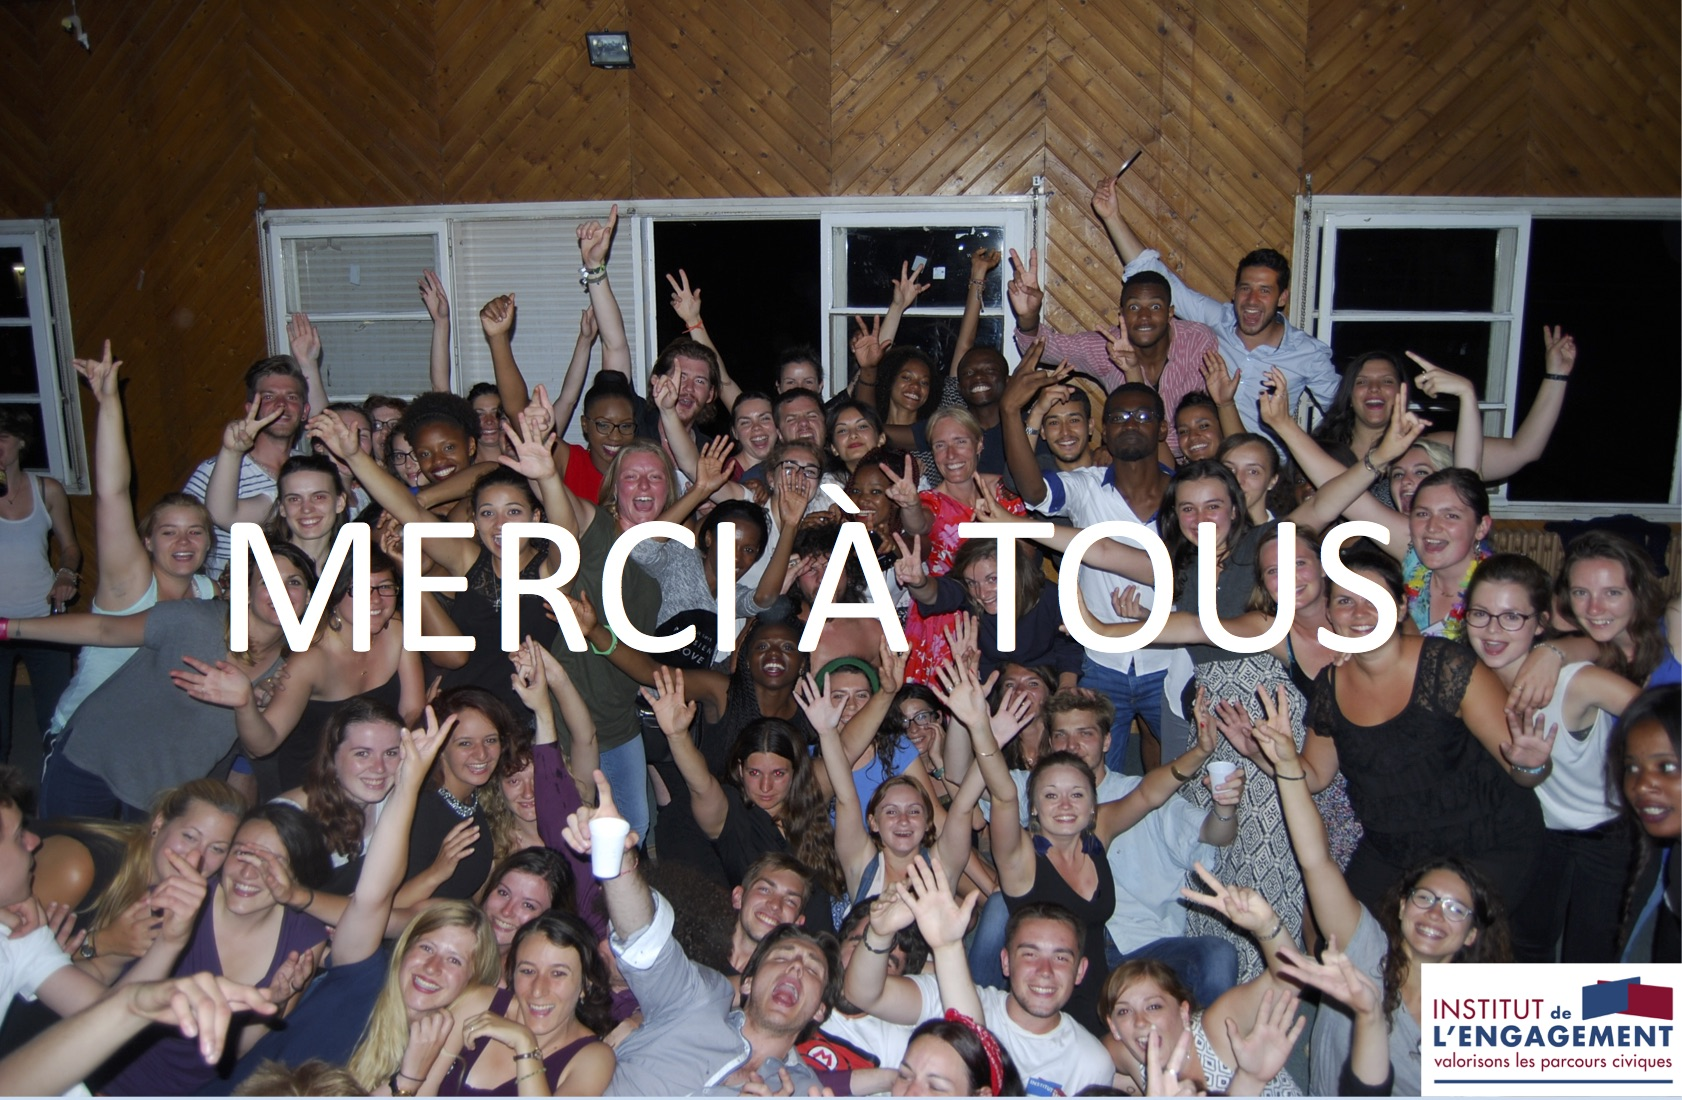 Merci à tous-website